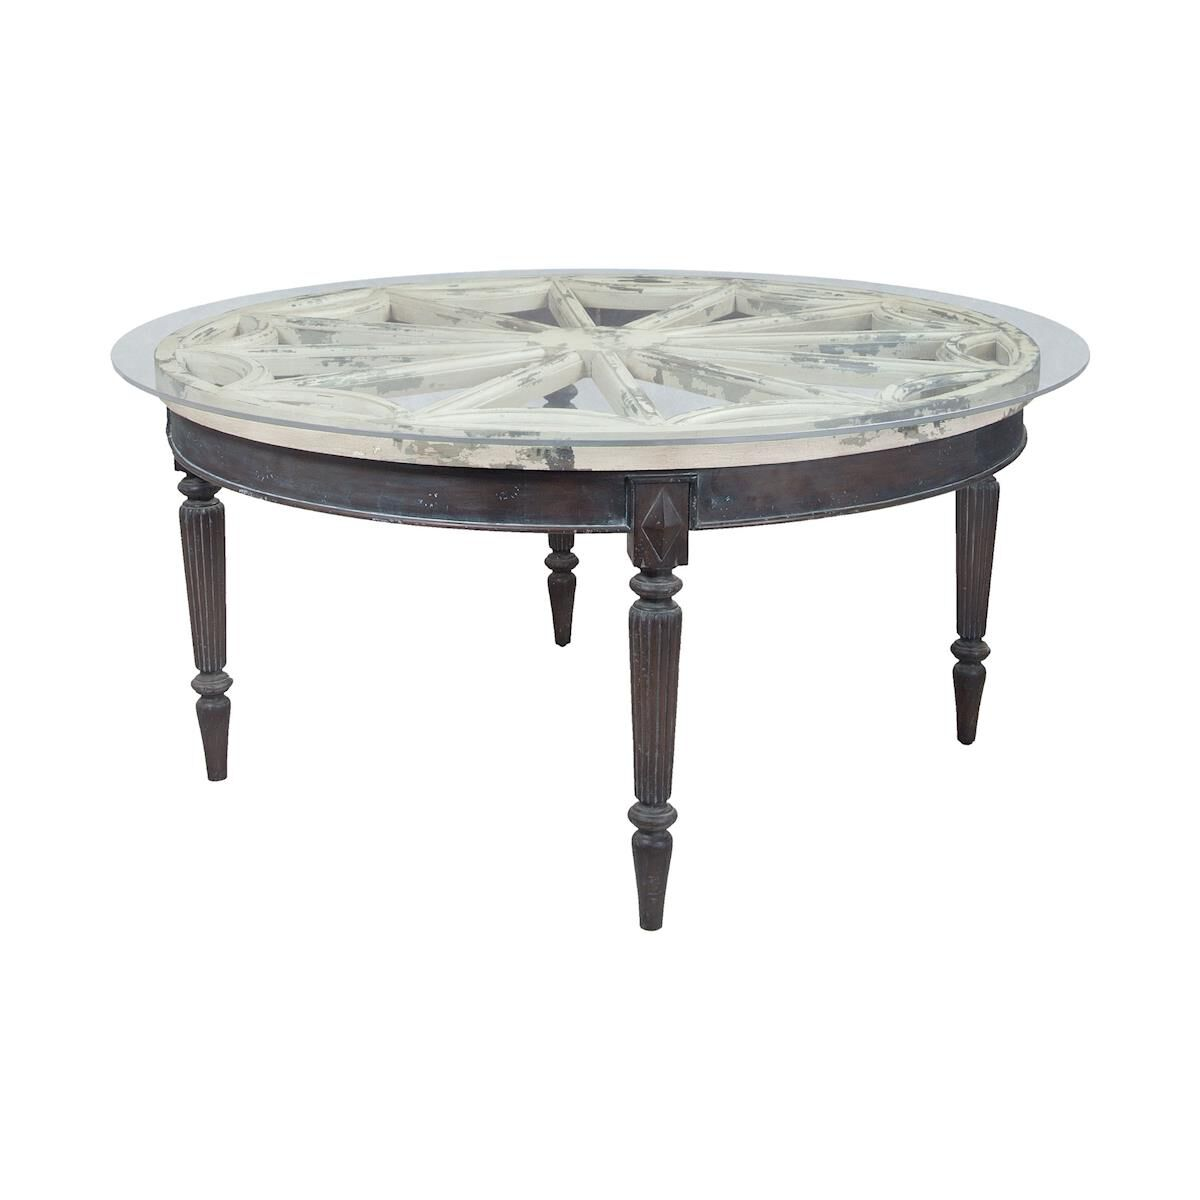 ELK Home Artifacts Dining Table Artifacts - 615002VBB-1 - Transitional